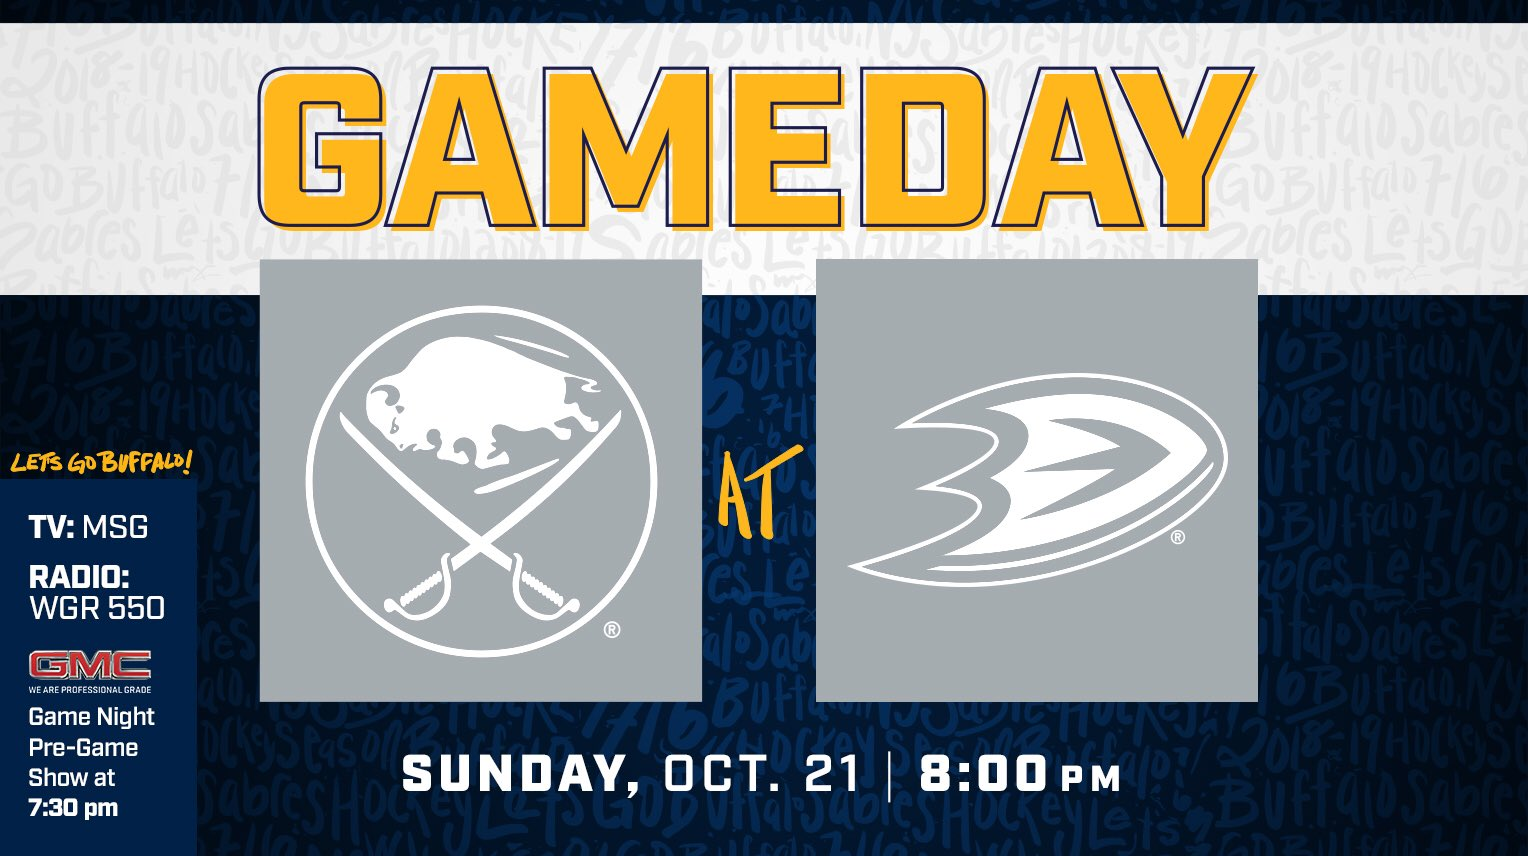 Let's finish the road trip strong.  #LetsGoBuffalo #Sabres https://t.co/mA9qT78NqC